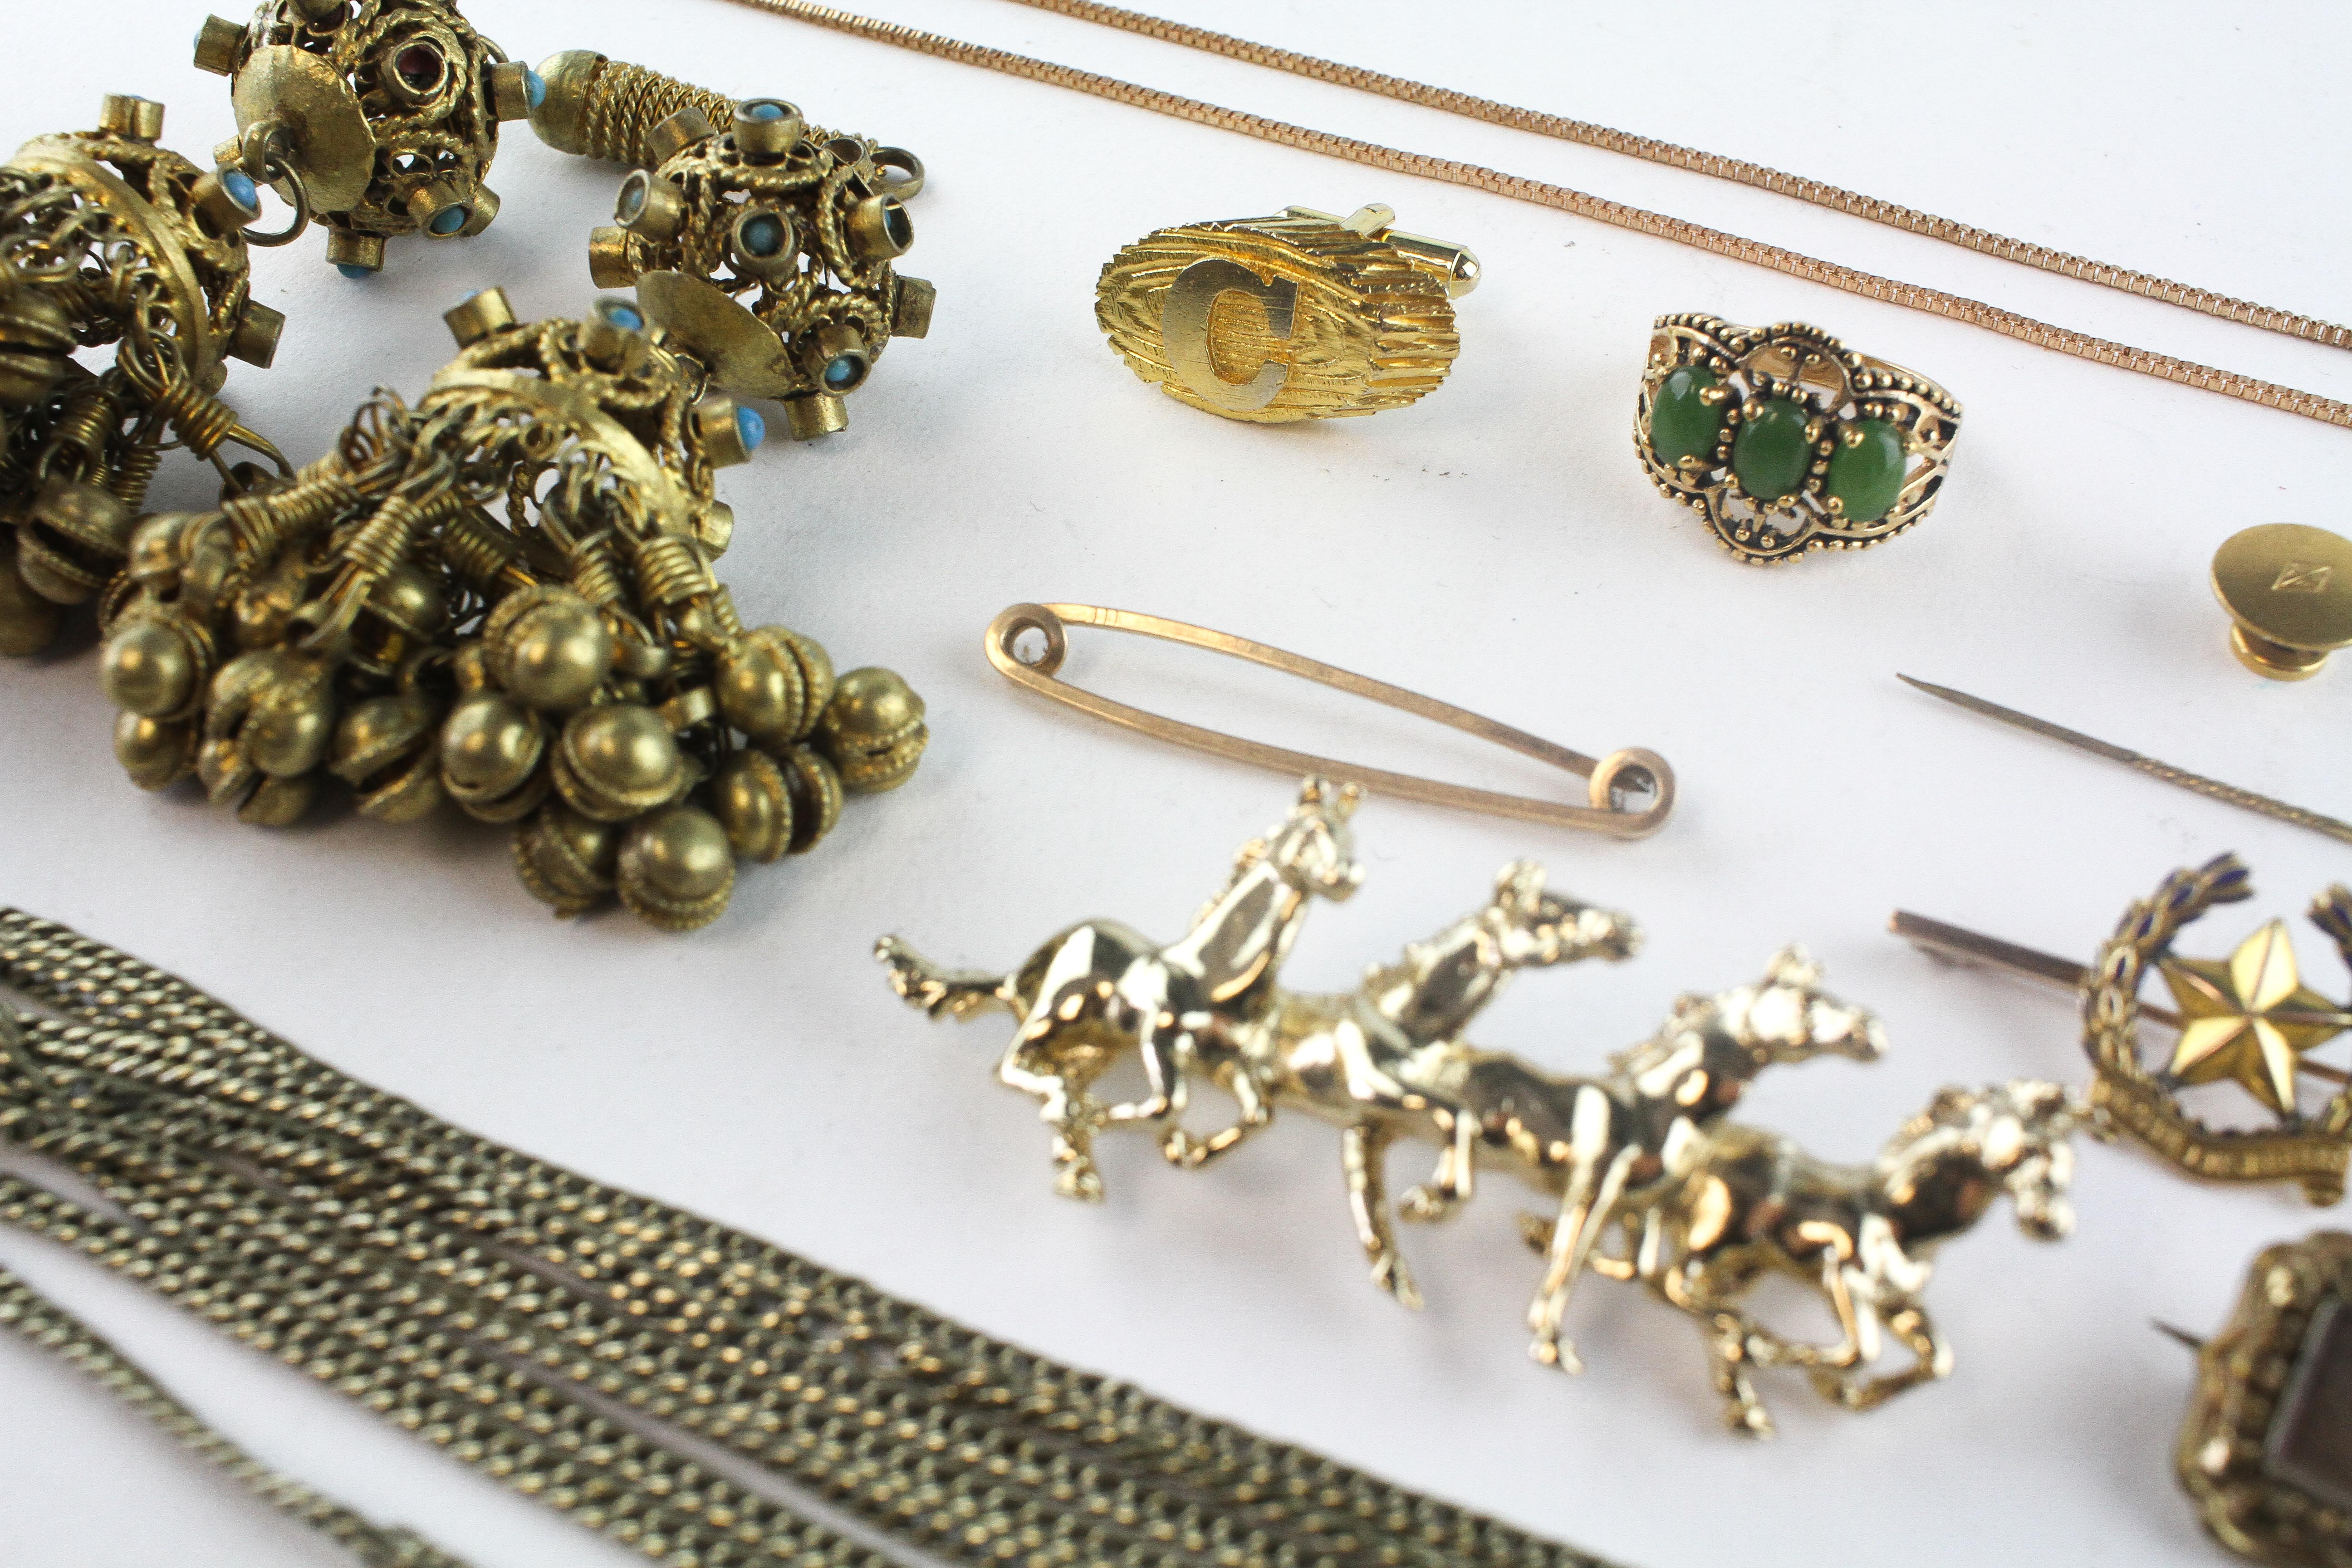 A collection of miscellaneous costume jewellery to include brooches, chains, - Image 2 of 2